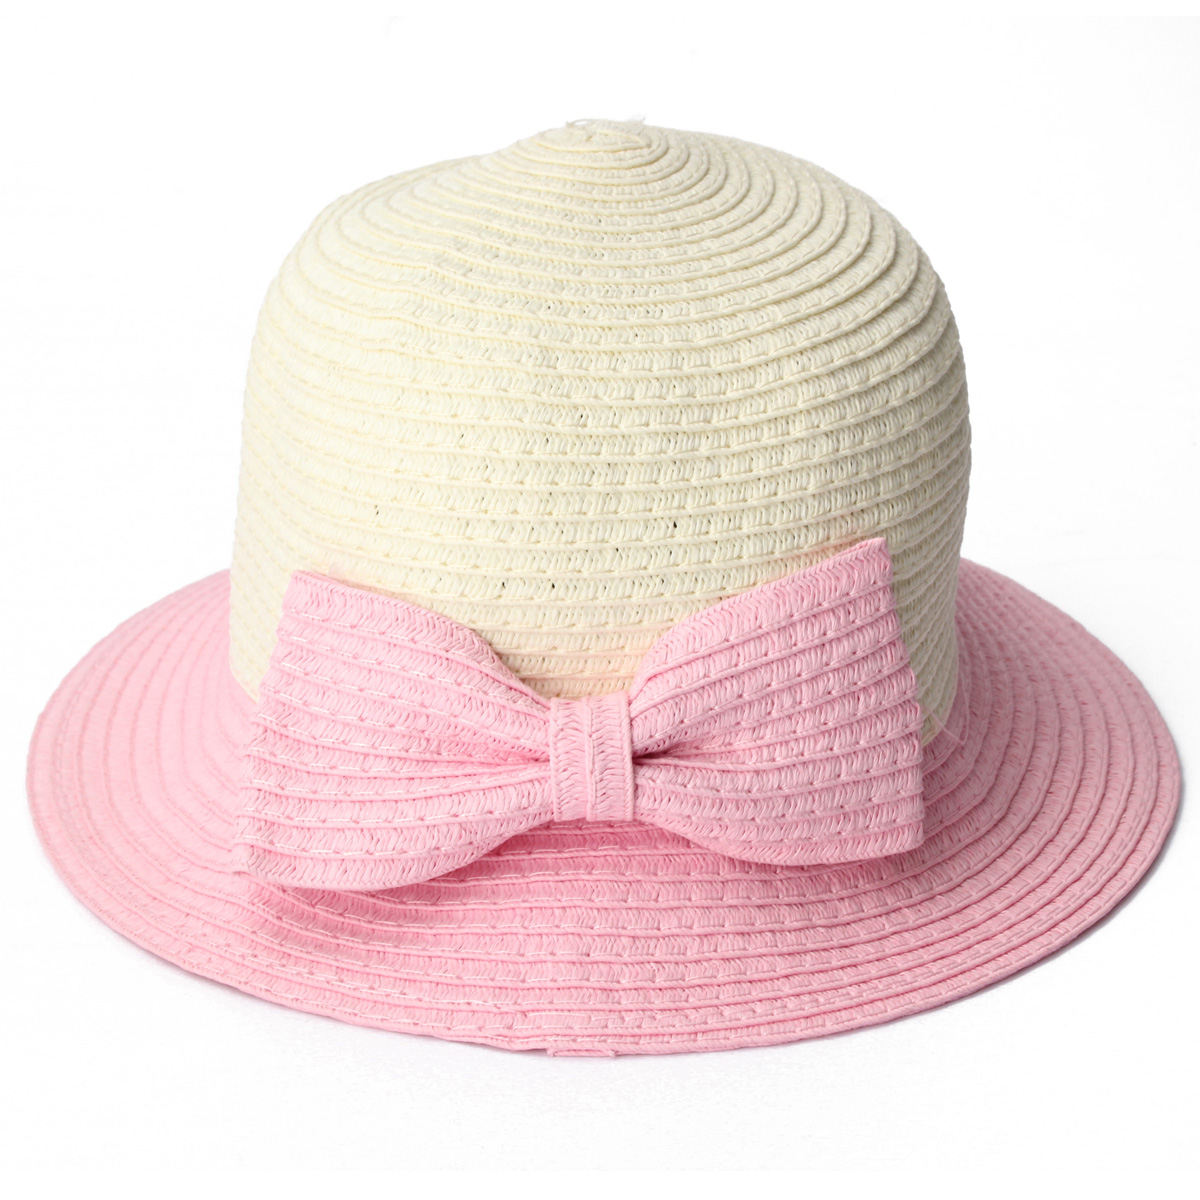 Kids Summer Hats. Today we are checking out all the sweetest sun hats and straw hats around for kids. As mom to a couple of fair skinned kids I'm a huge fan of a sun hat, they're a lifesaver for those long summer days! We've got a few for baby and the rest are for our bigger kids.